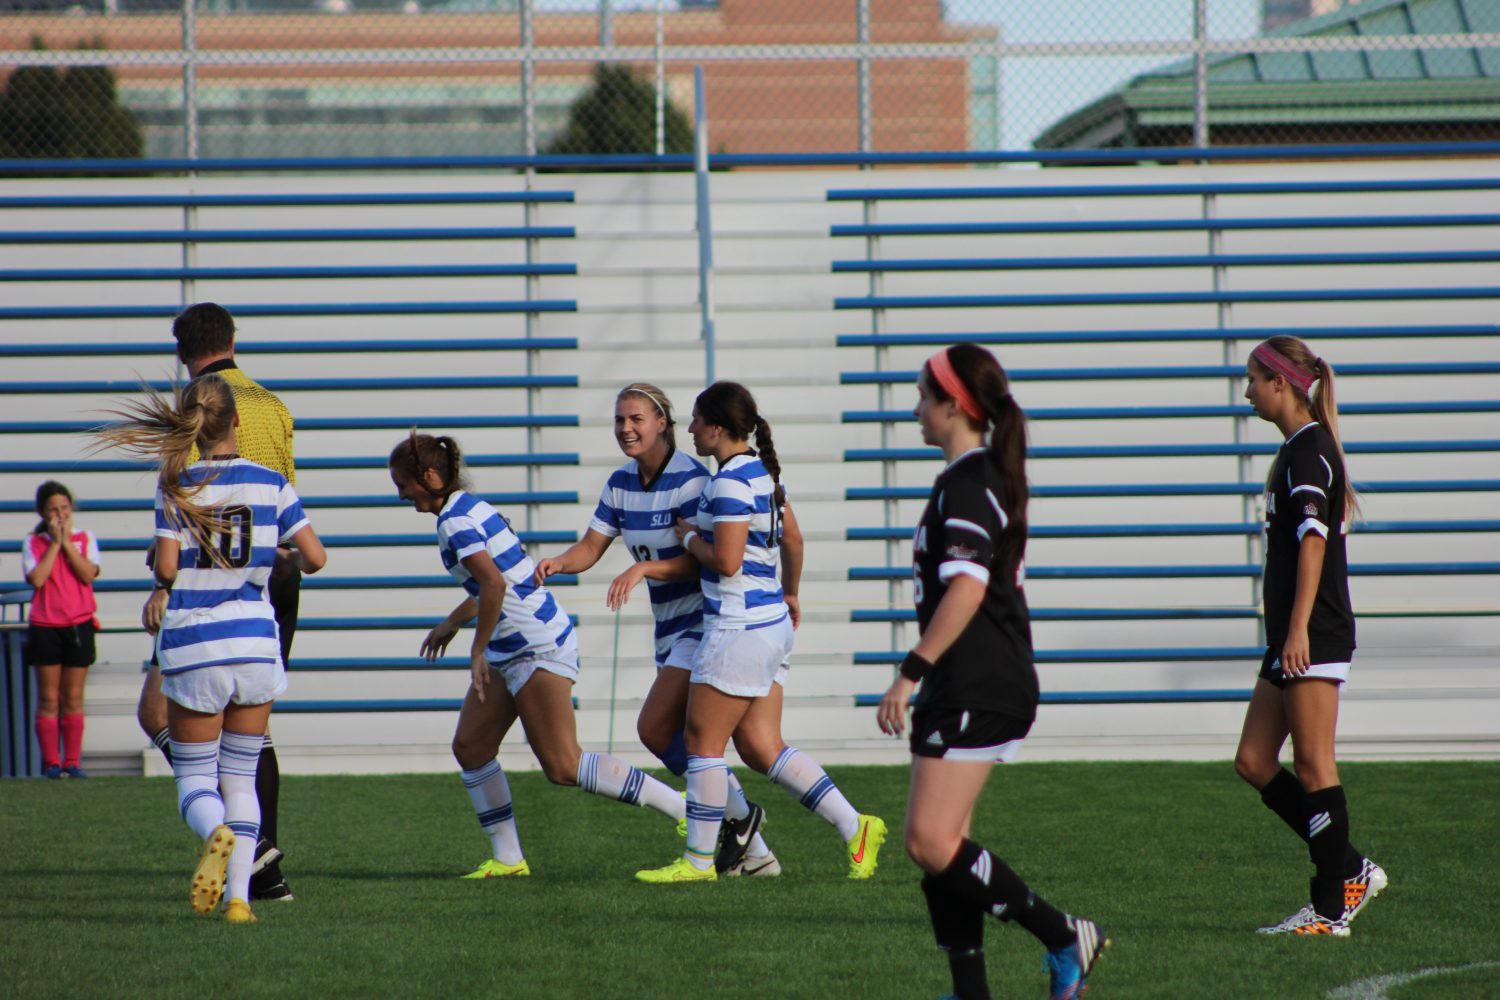 Celebrate%3A+The+women%E2%80%99s+soccer+team+celebrates+one+of+four+goals+in+a+game+against+UNO.+The+Billikens+scored+two+goals+in+each+half+of+the+contest.%0AEmma+Kelly+%2F+Staff+Photographer